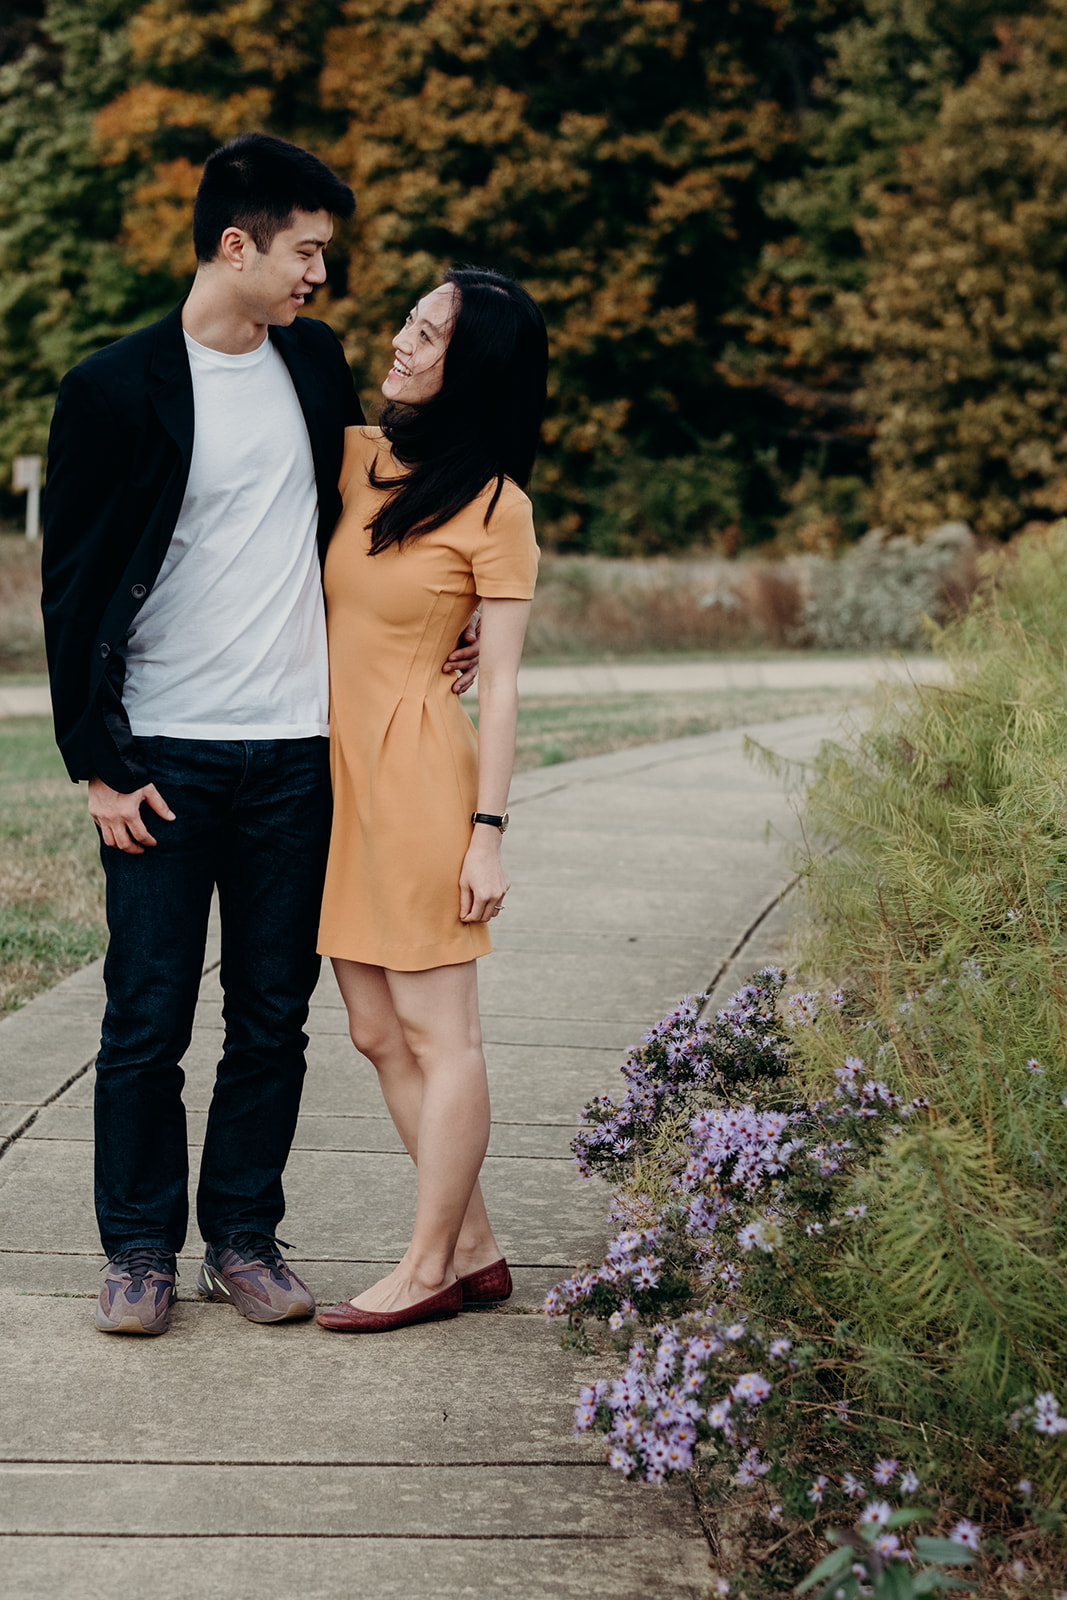 An engaged couple walks along a garden path at the National Arboretum.